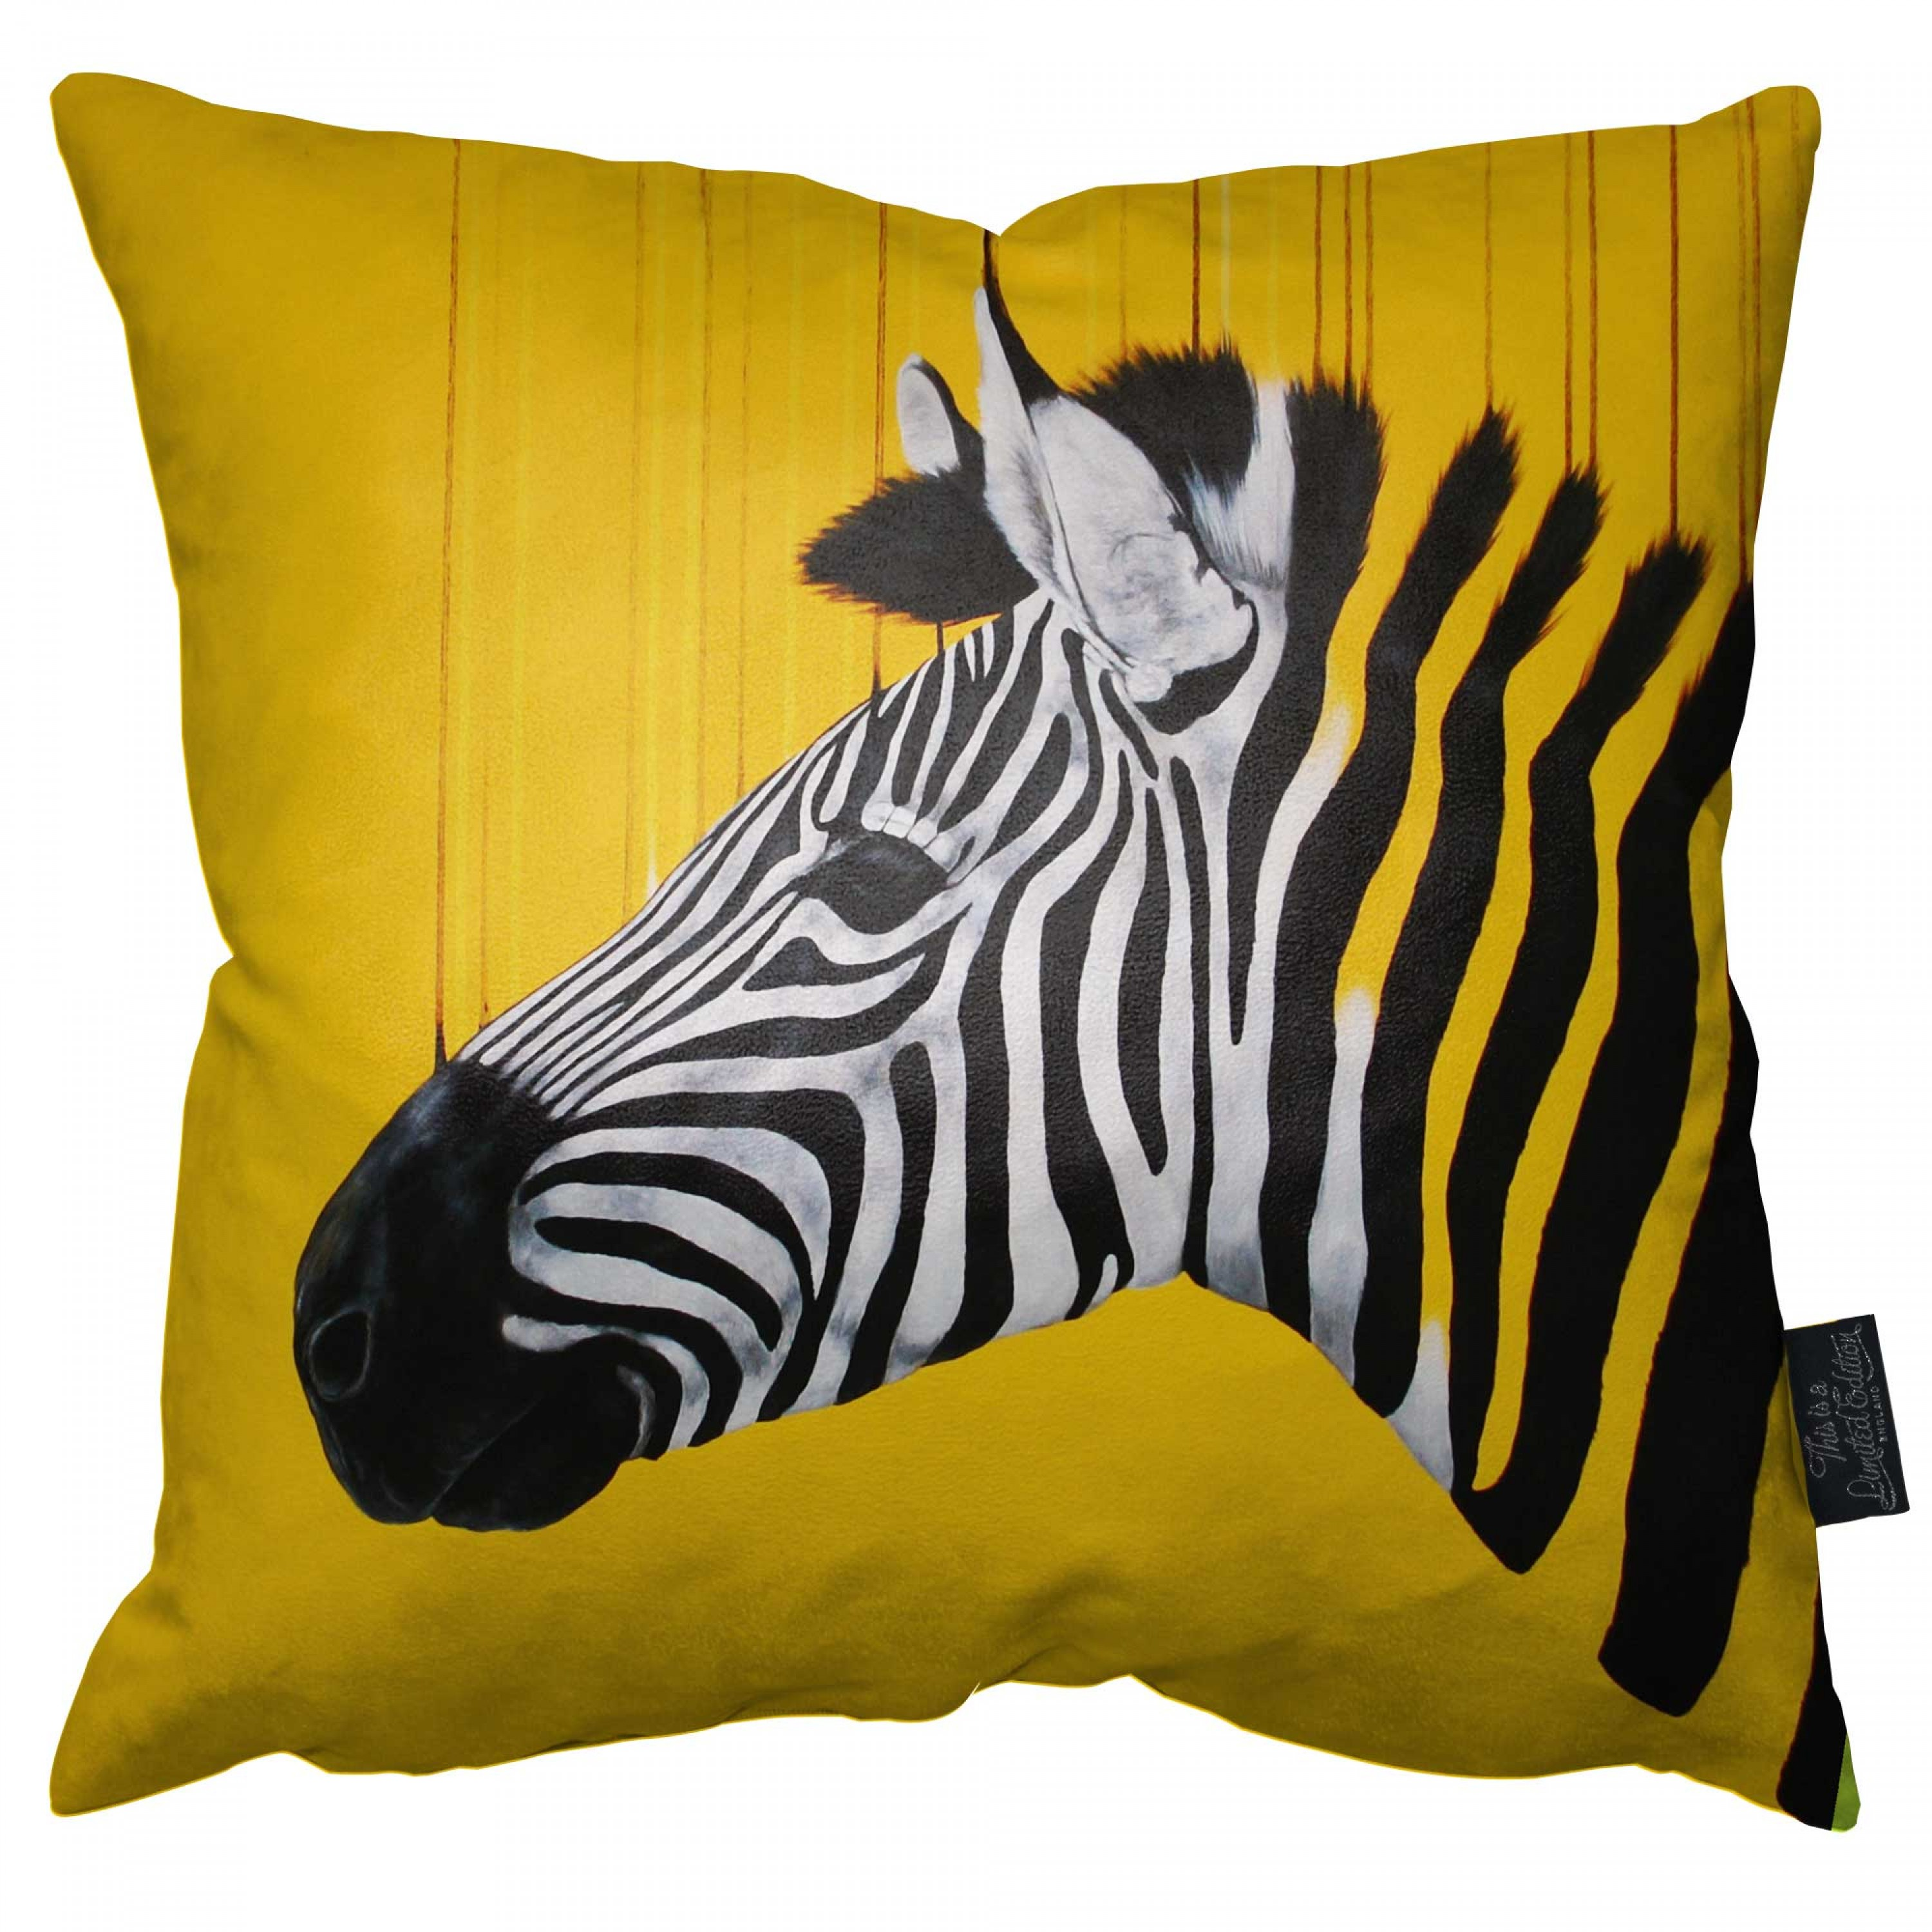 Fragmented Yellow Freedom - Pillow